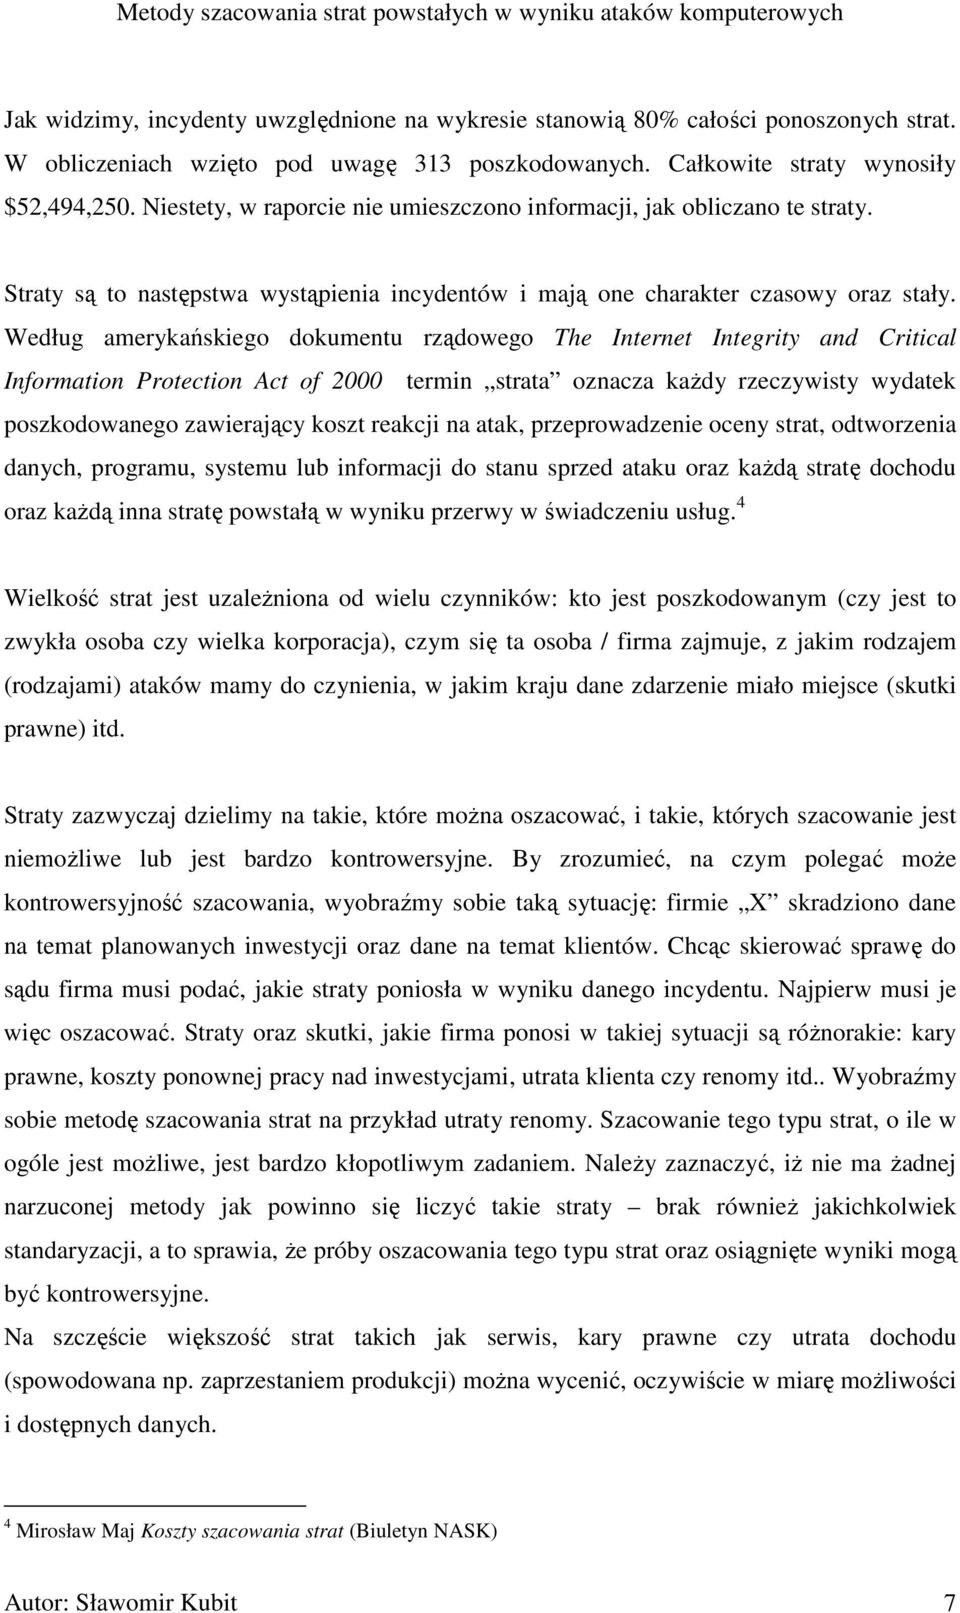 Według amerykańskiego dokumentu rządowego The Internet Integrity and Critical Information Protection Act of 2000 termin strata oznacza kaŝdy rzeczywisty wydatek poszkodowanego zawierający koszt